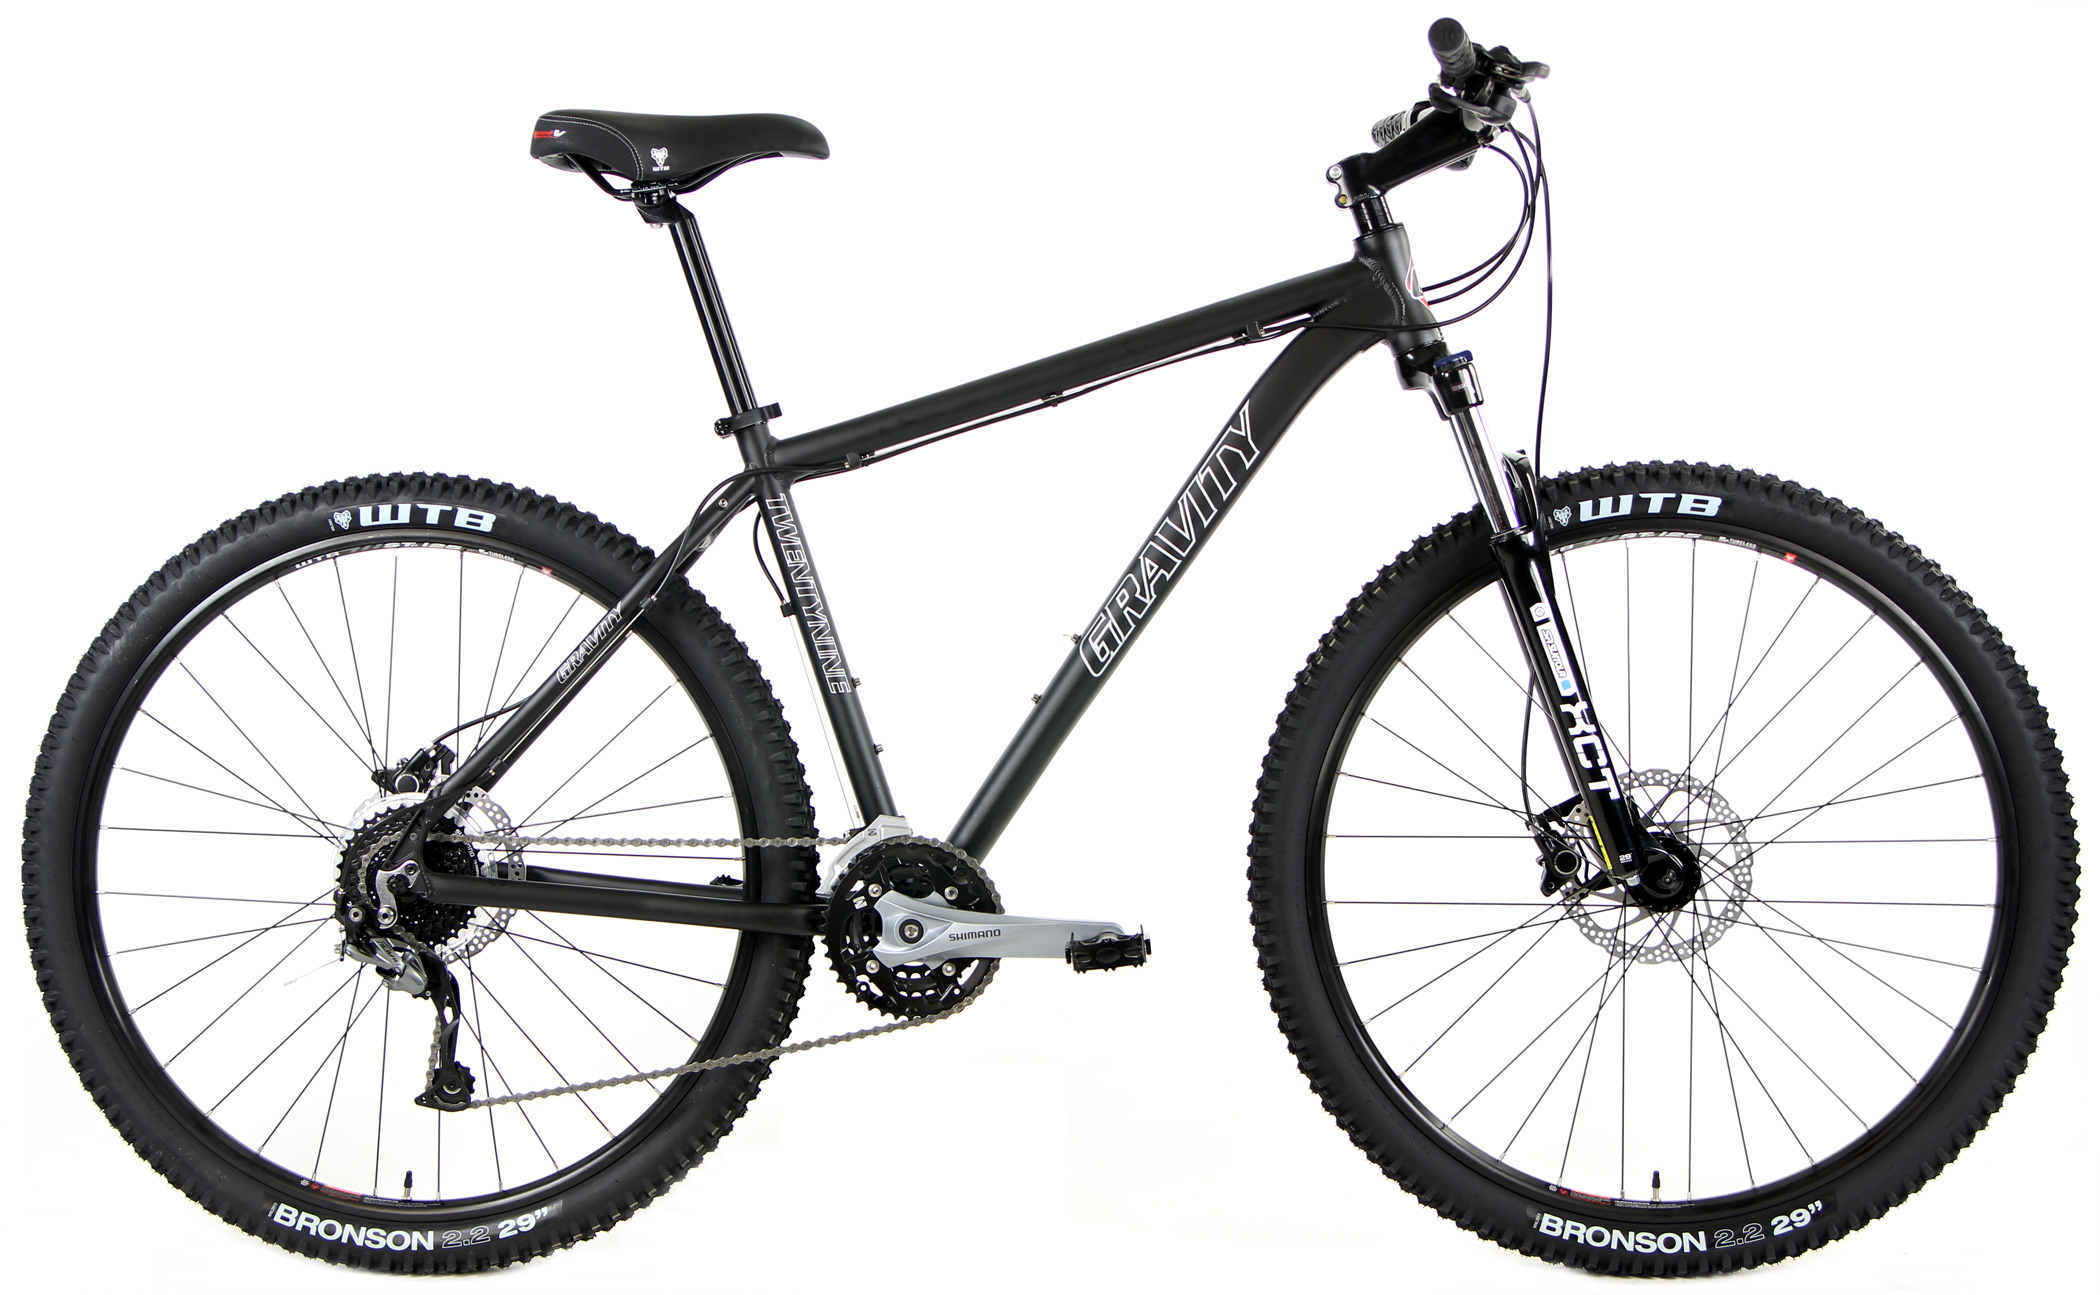 29 Er Bike Save Up To 60 Off New Mountain Bikes Mtb Gravity 29point2